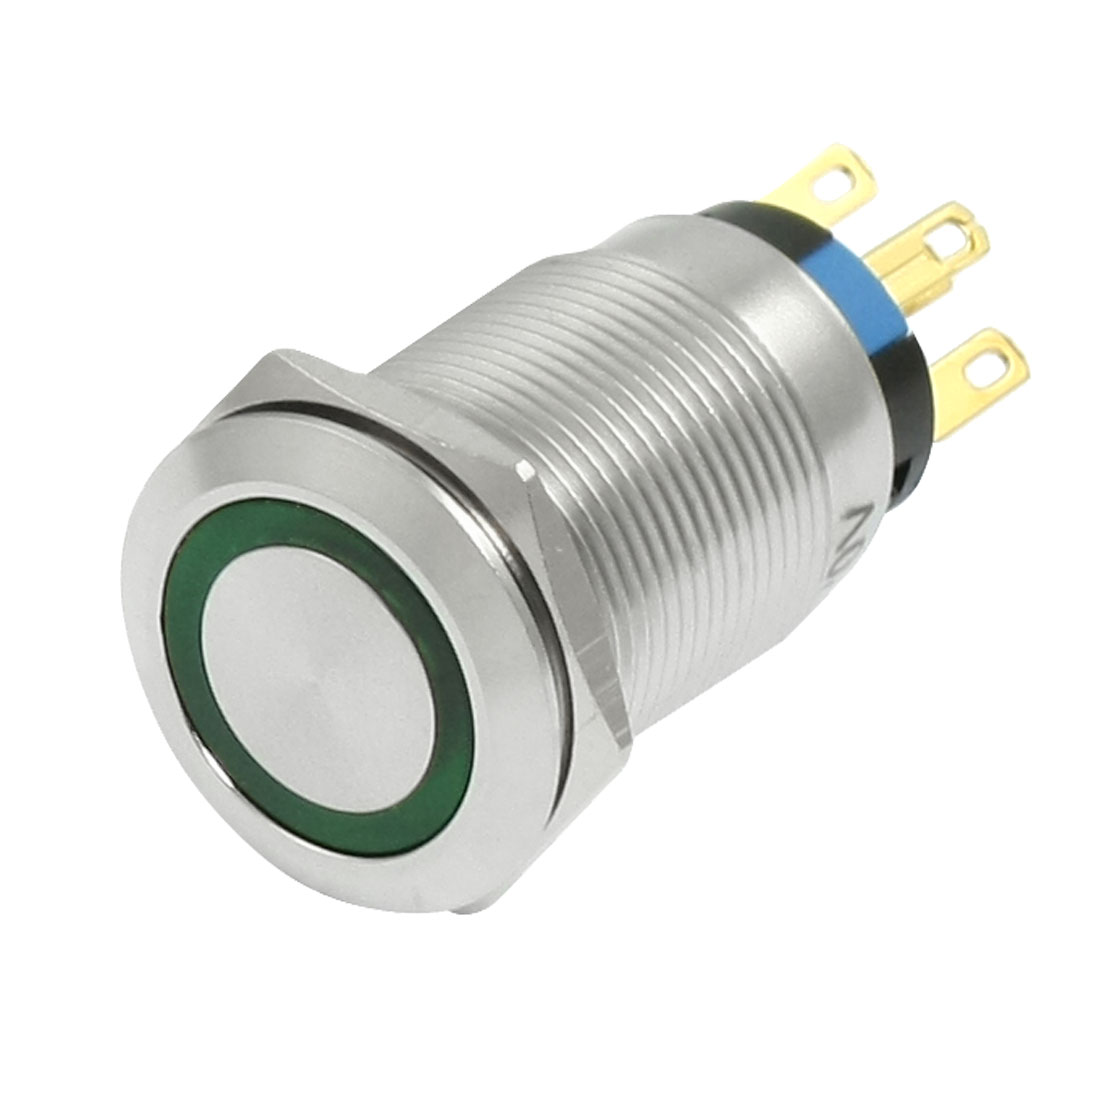 19mm 220V Flat Shape Momentary Green LED Stainless Push Button Switch